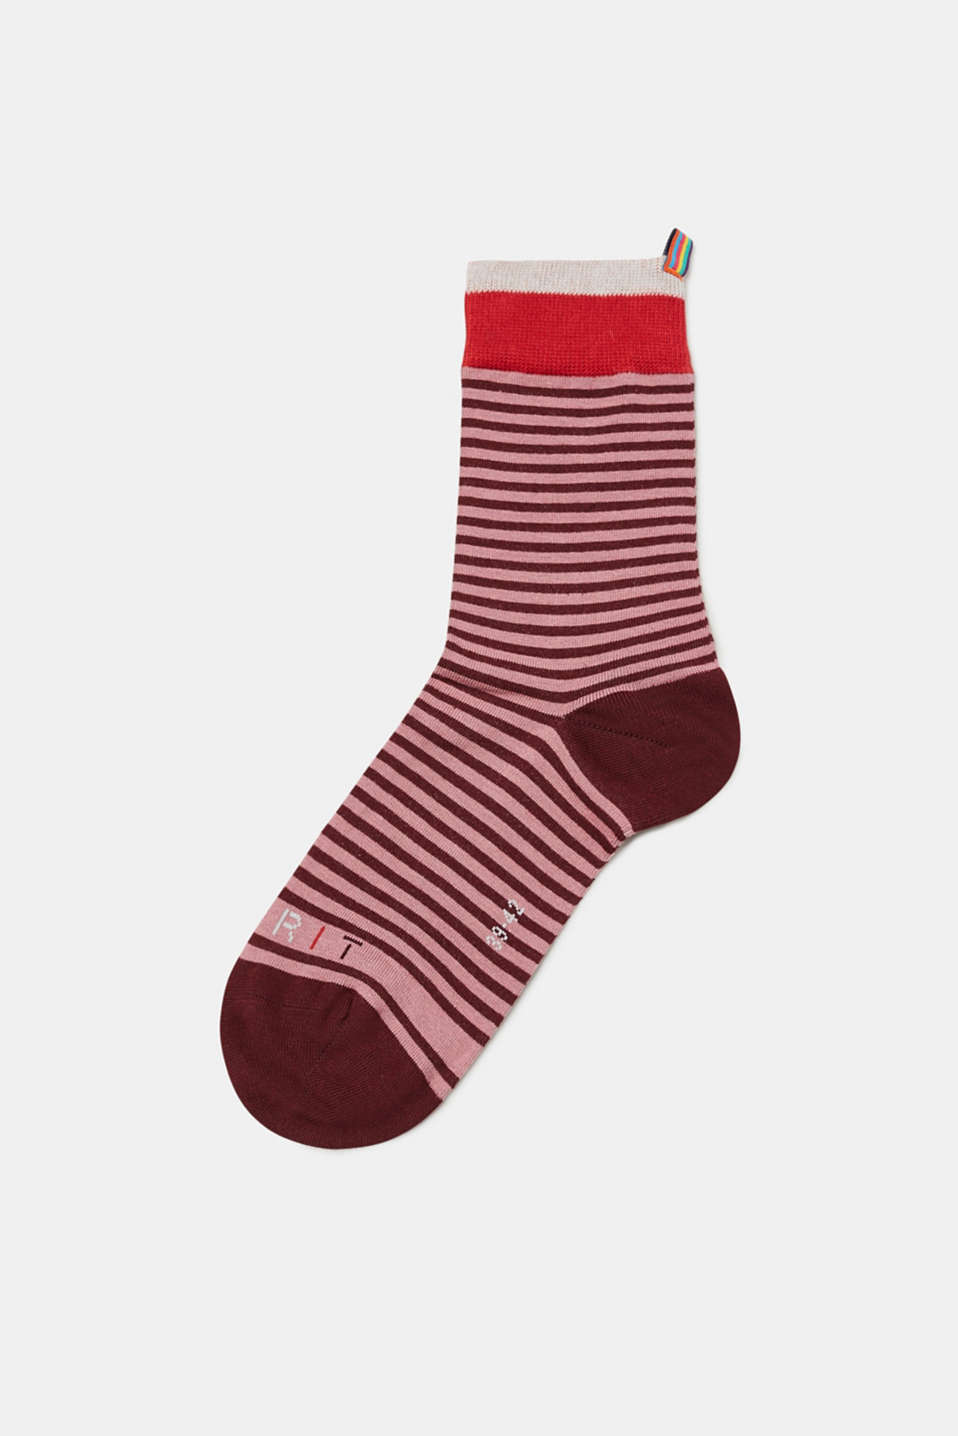 Esprit - Socks with stripes and contrasting cuffs